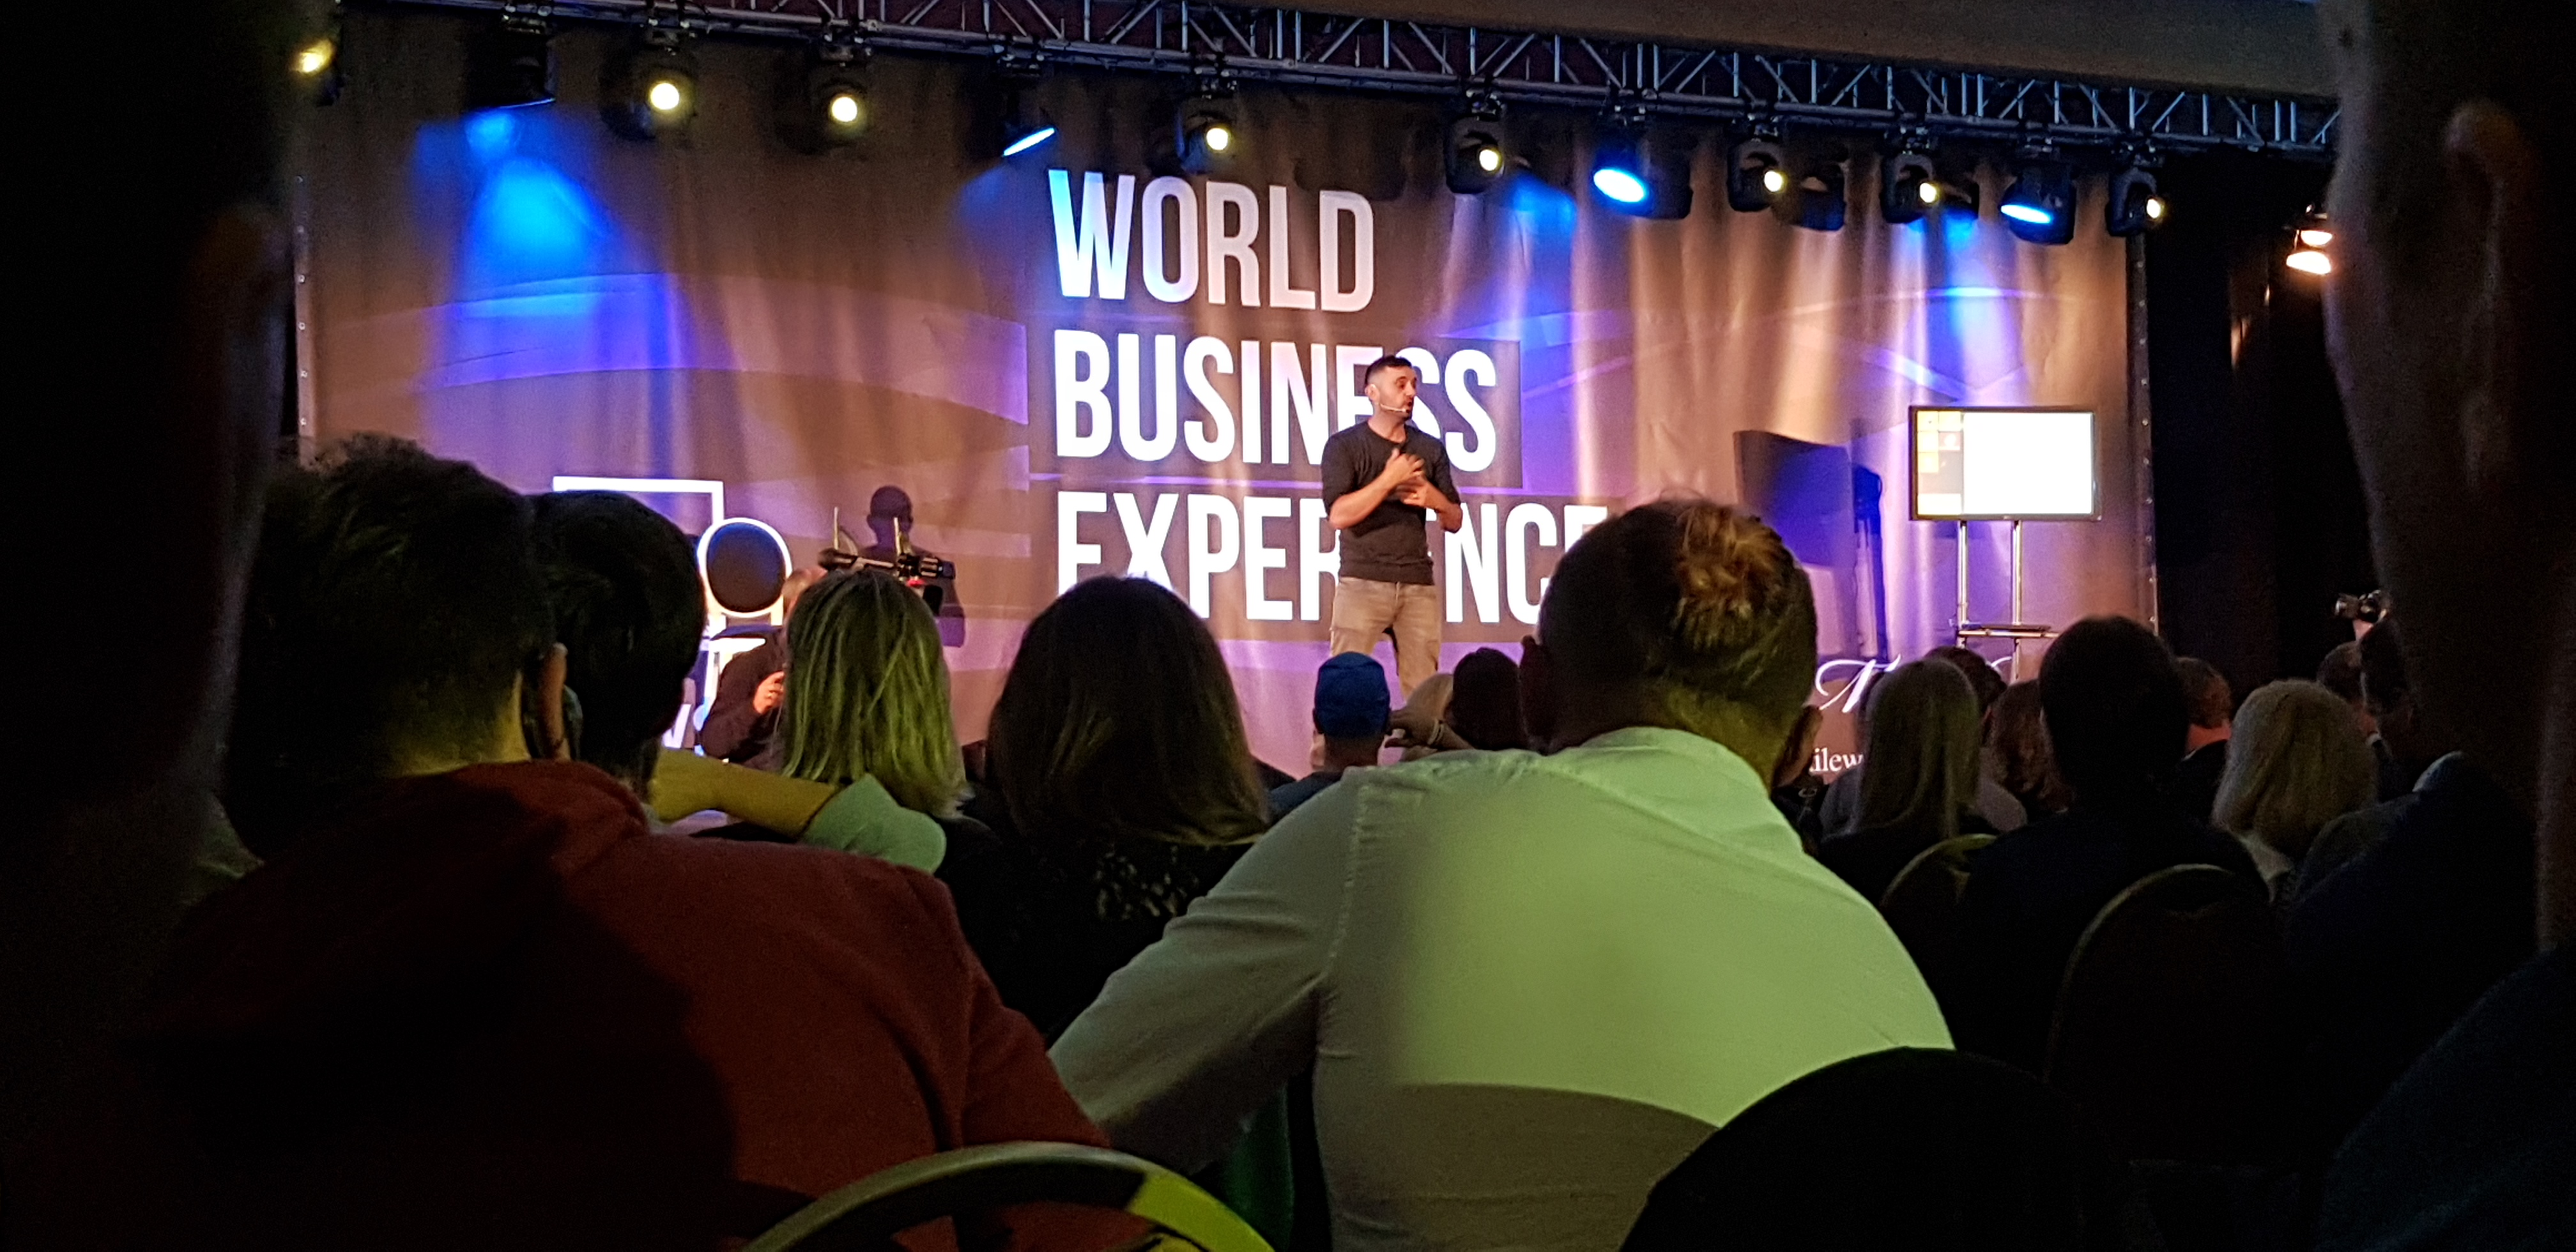 Gary Vee on stage!